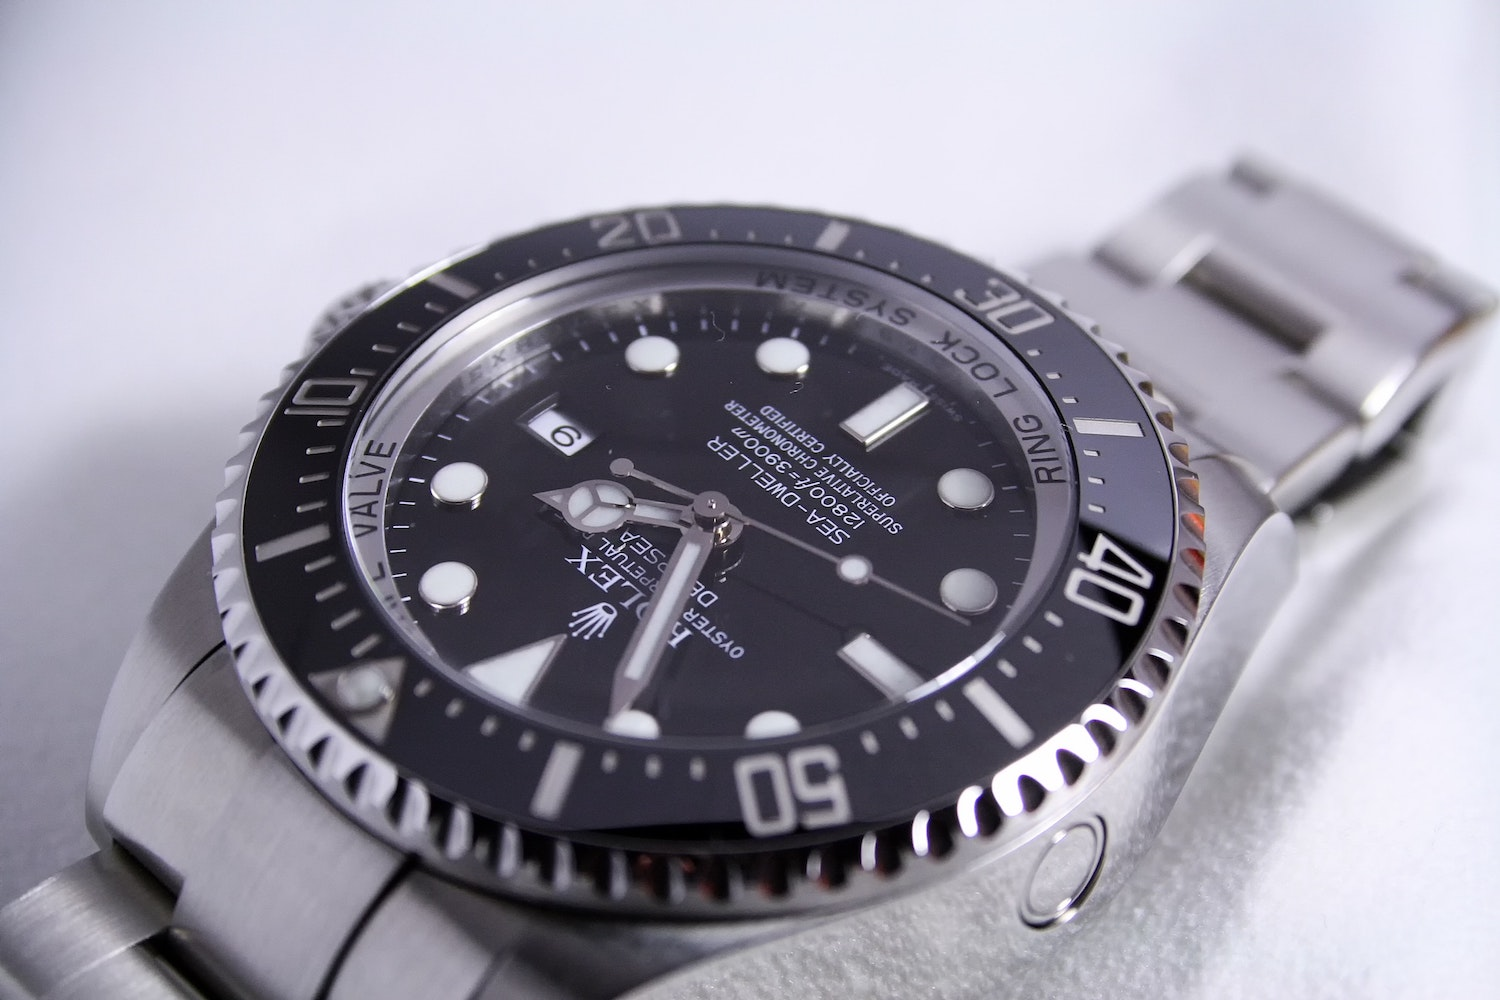 Rolexes in DeFi? NFT Marketplace 4K Raises $3M to Combine NFTs and Luxury Goods